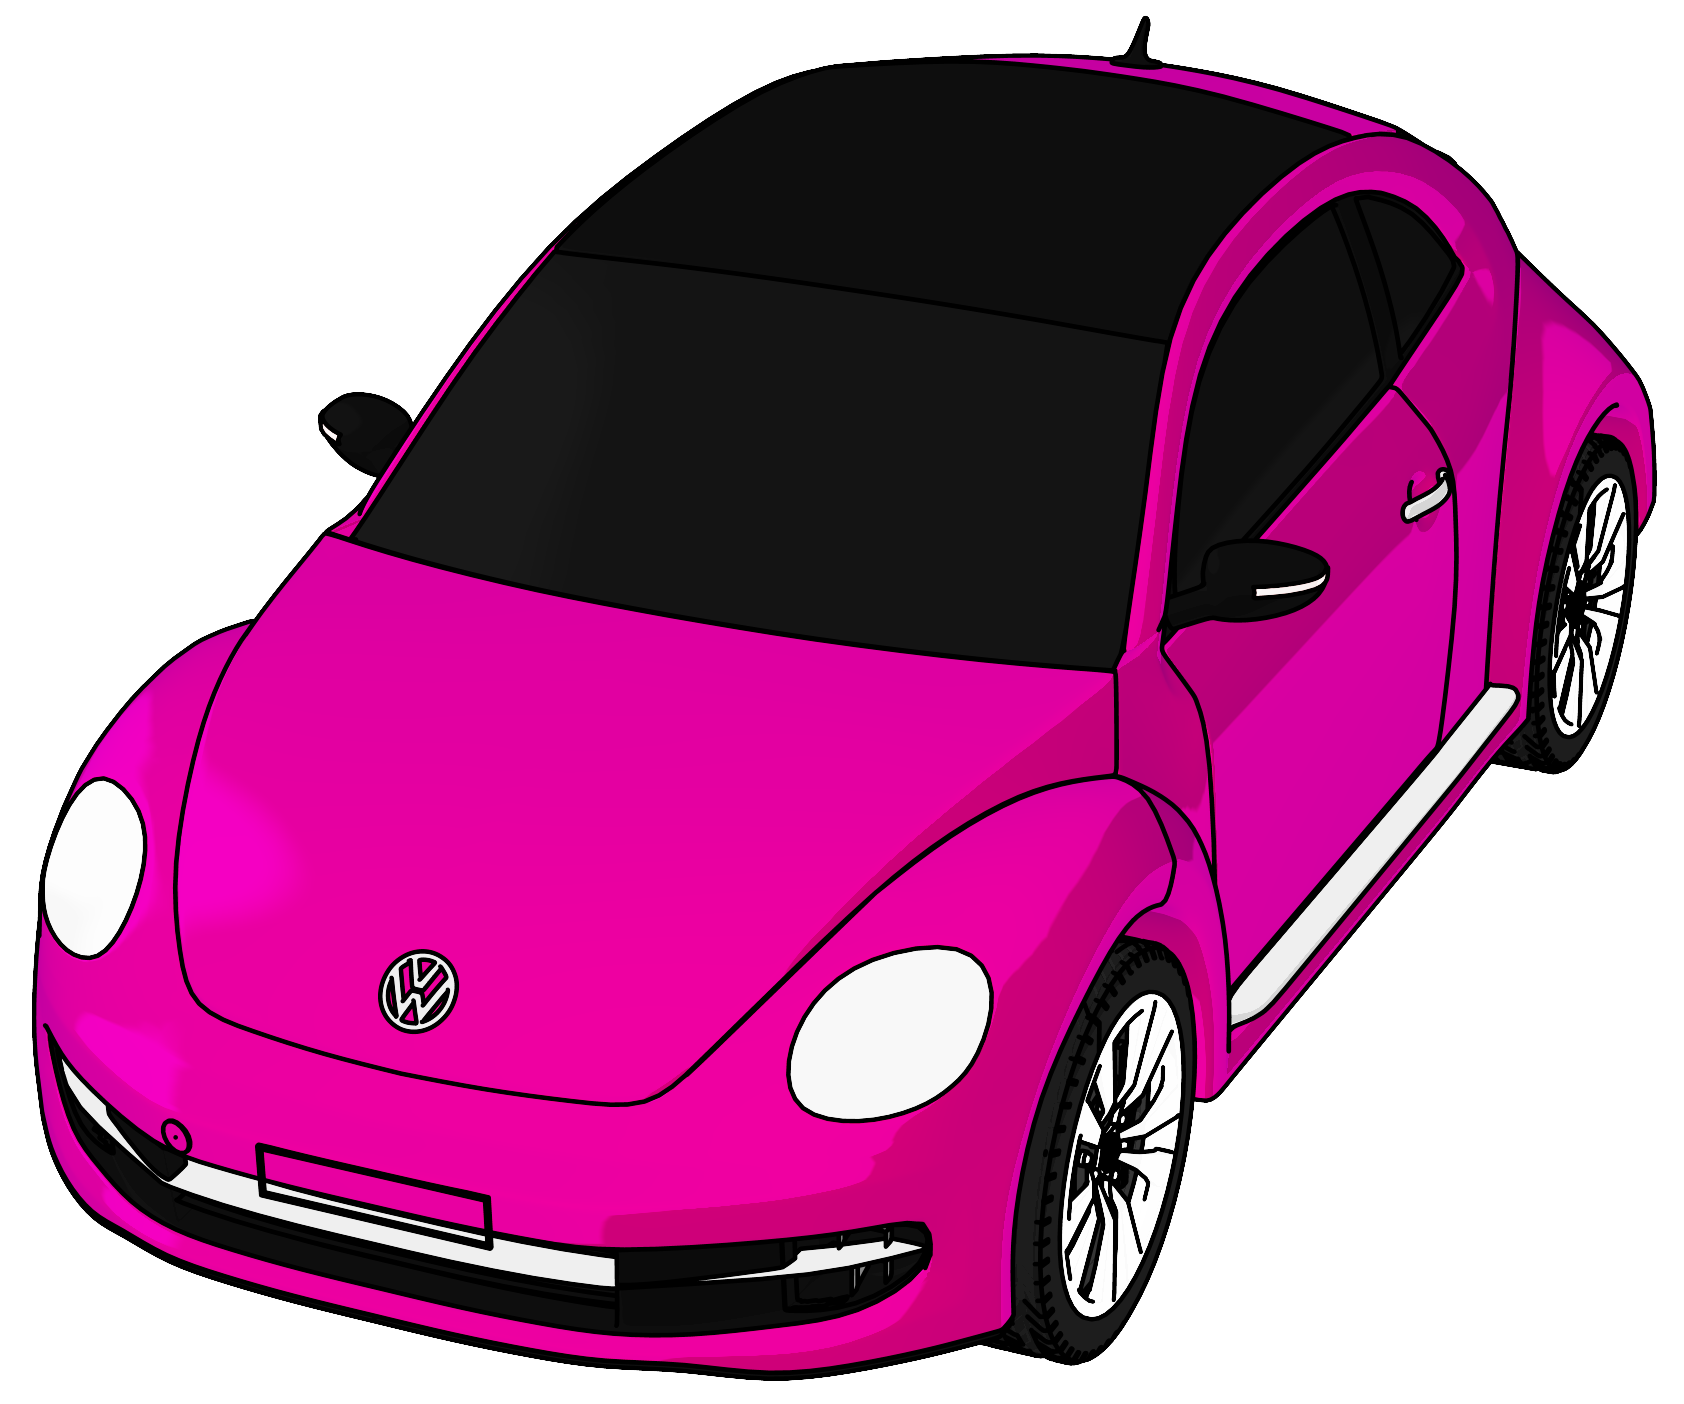 Vw volkswagen perspective view. Clipart car beetle